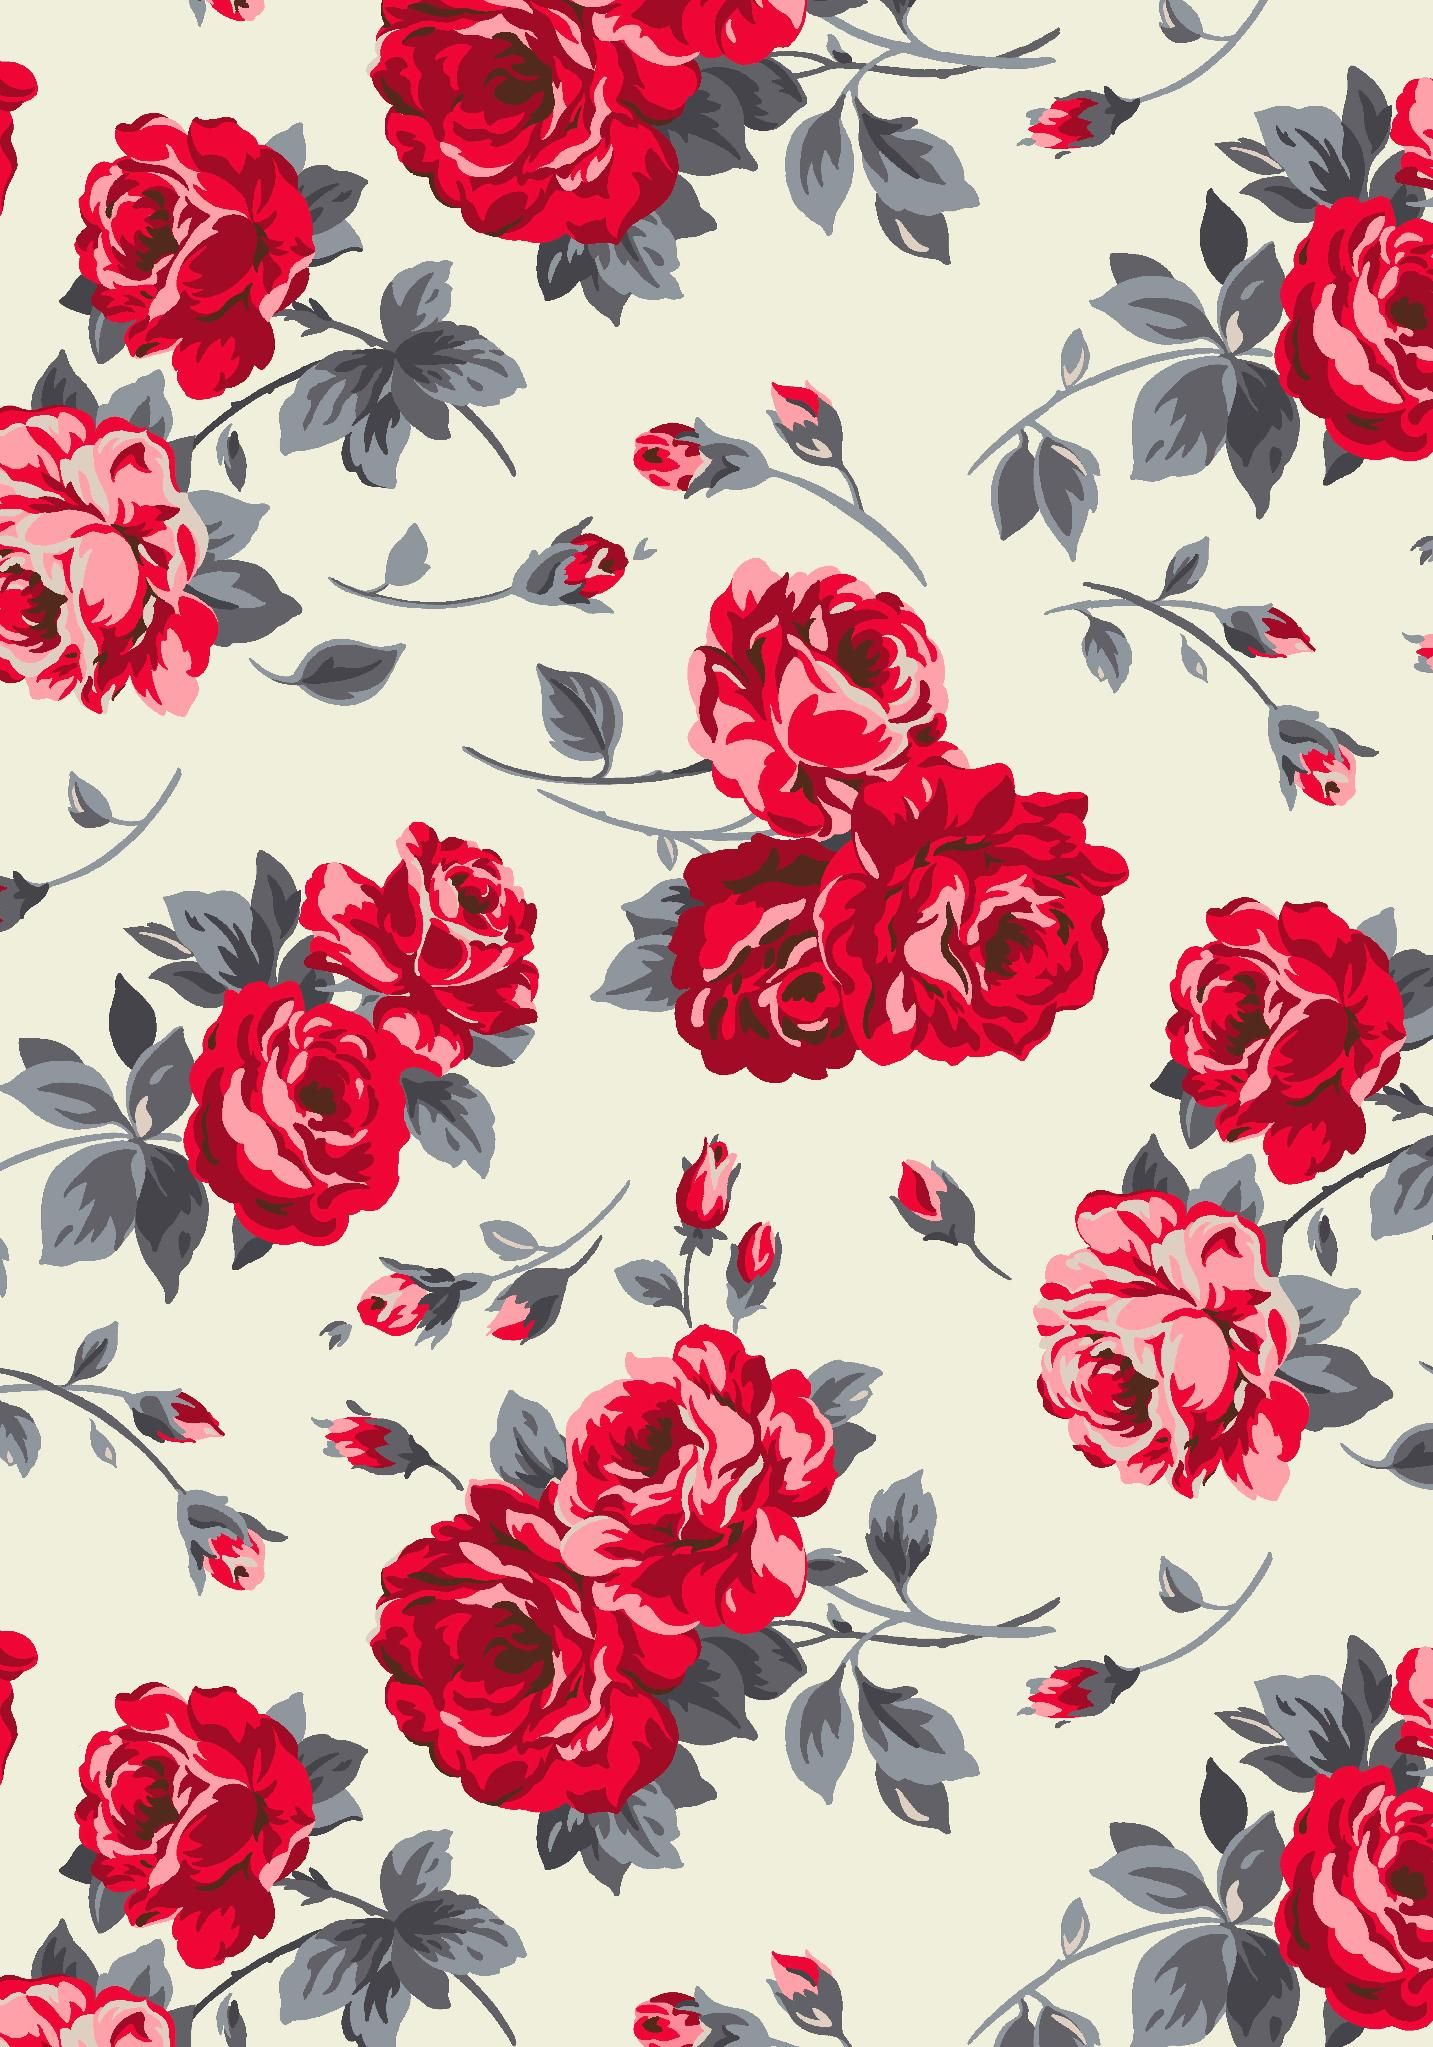 ardingly rose vintage inspired roses in chic modern colours make this the perfect print